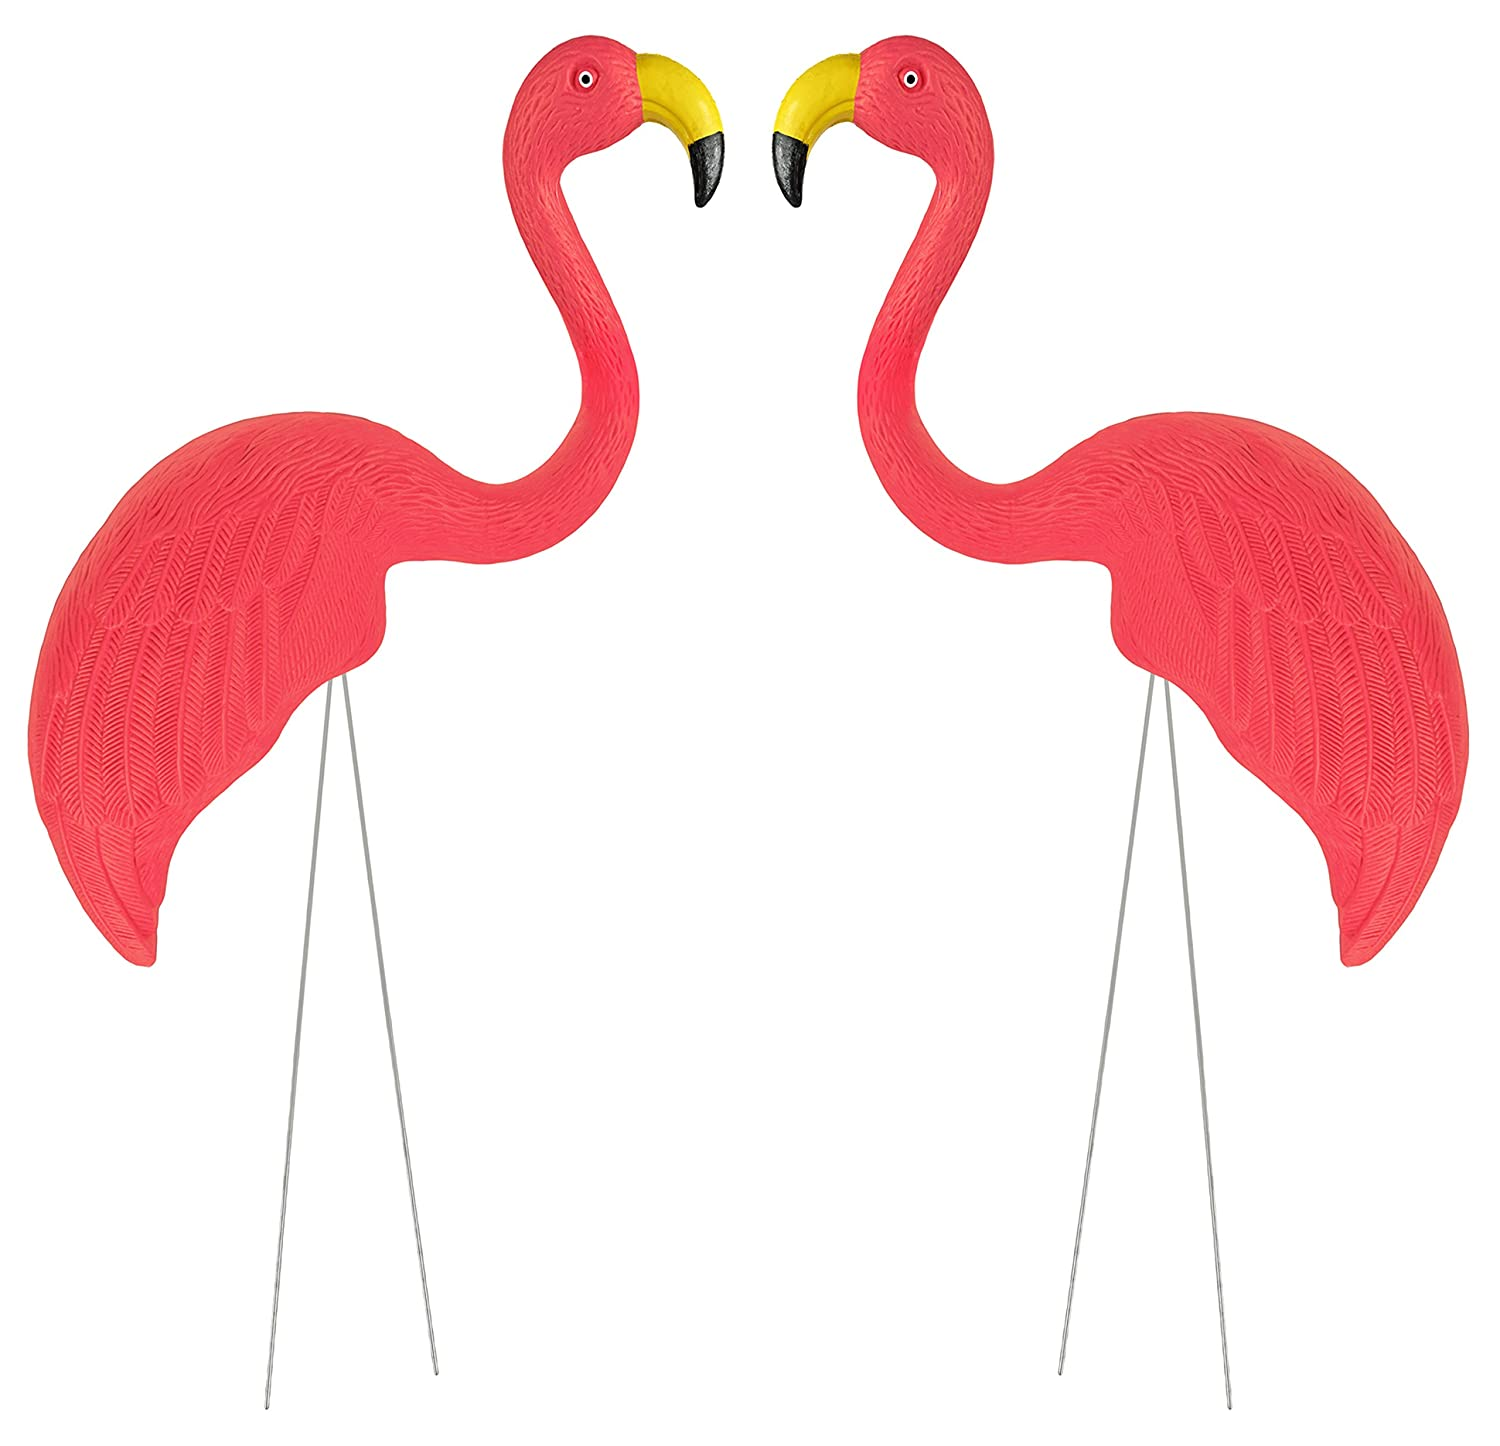 Includes 2 Metal 16.5 Stakes for Flamingo Give Your Lawn a Retro Throwback Look or Flock Your Friends! Pink 16.5x5 Garden Flamingos